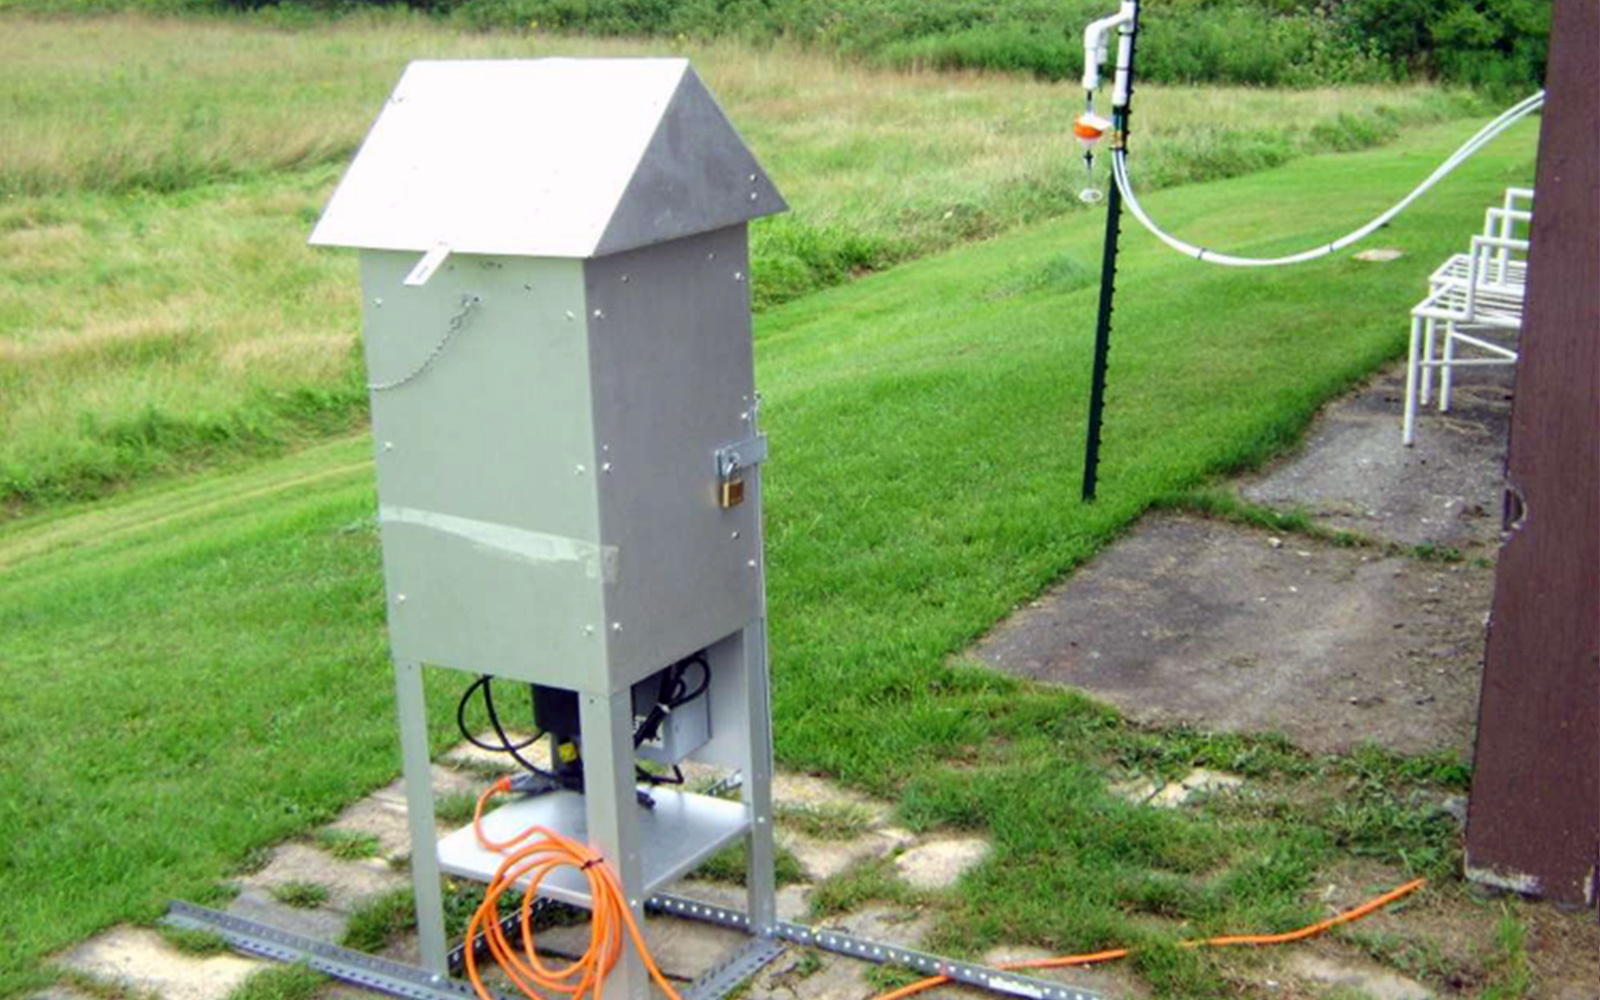 Air monitoring device situated in a yard just outside a home